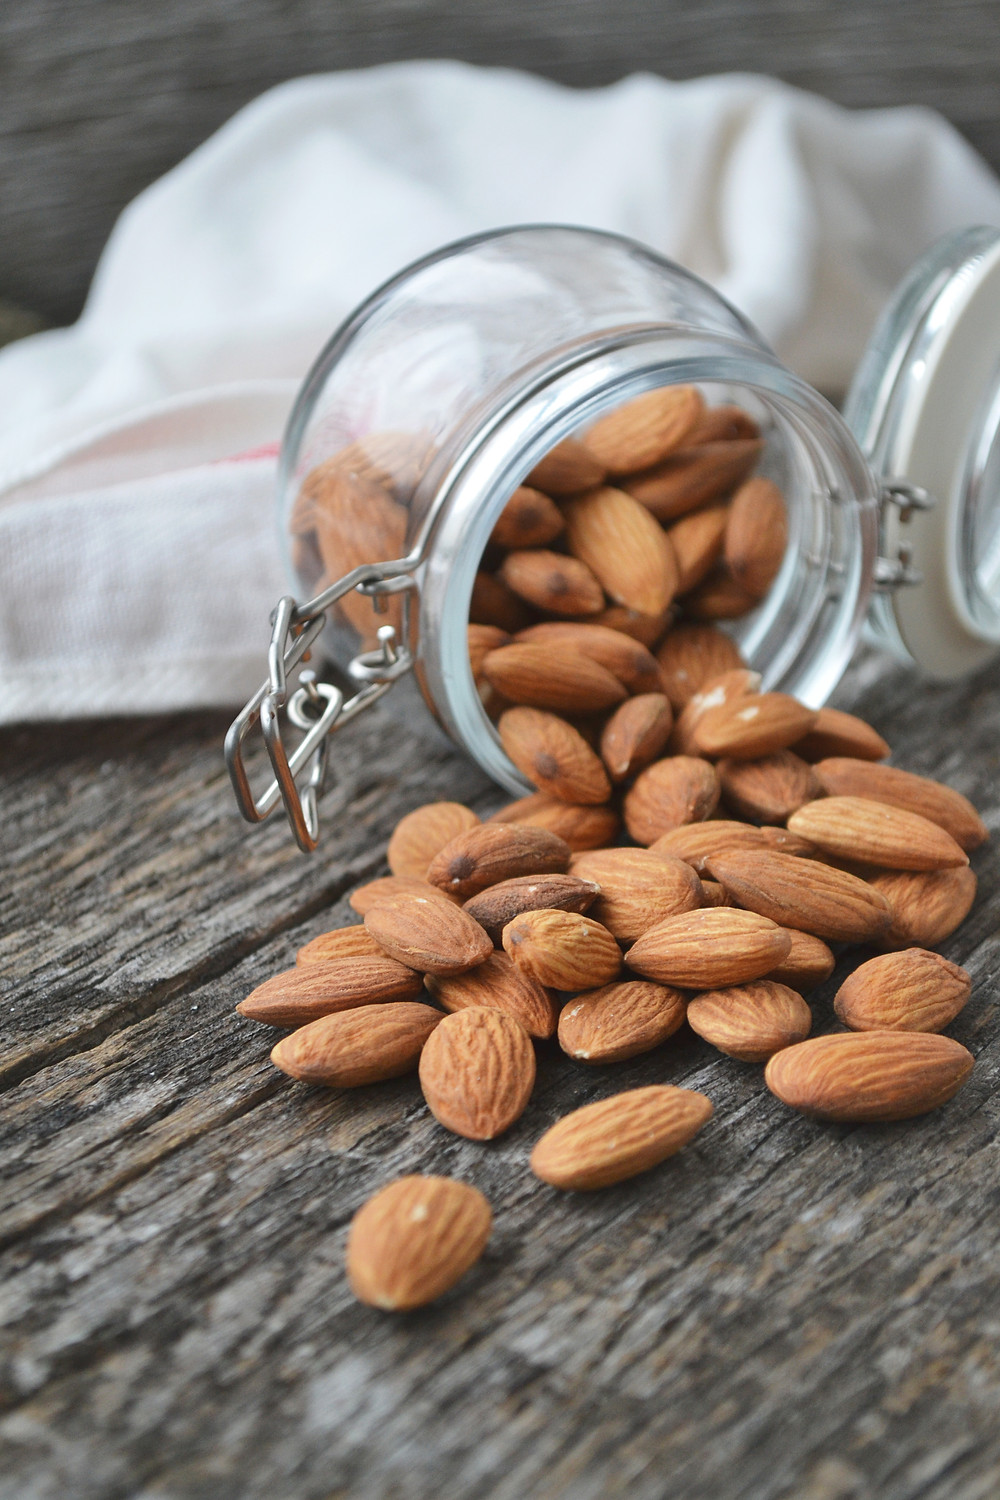 Almonds food photography